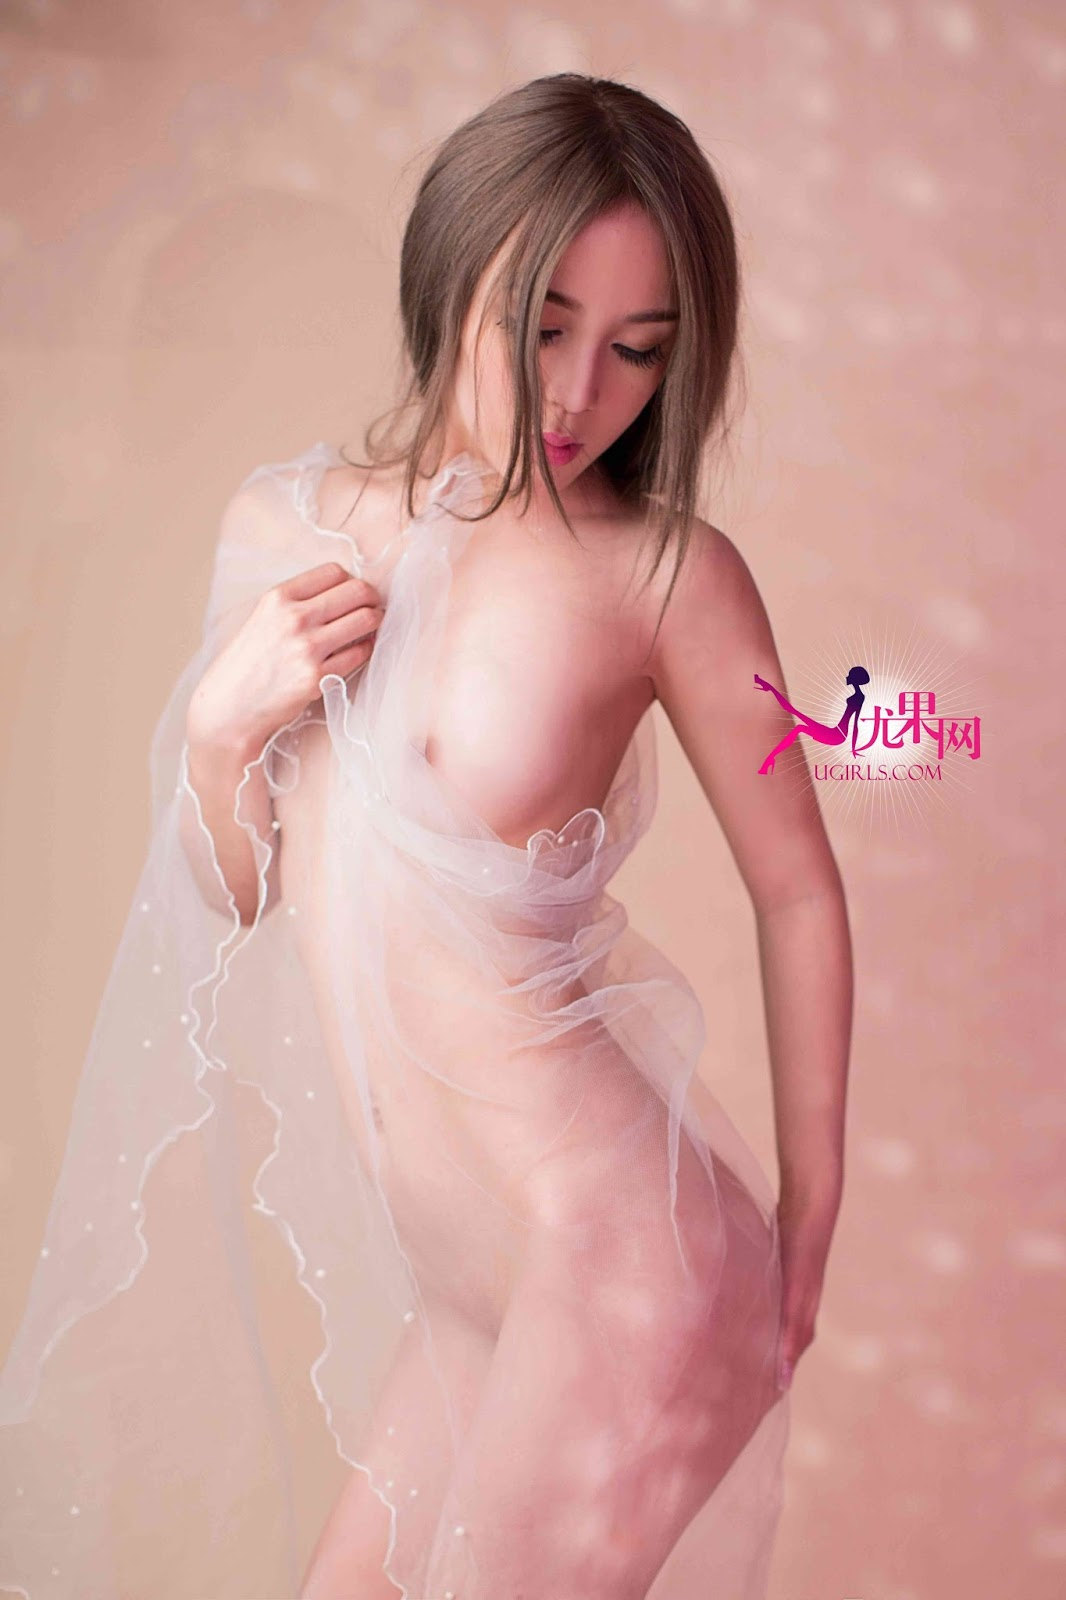 asian female model thonged